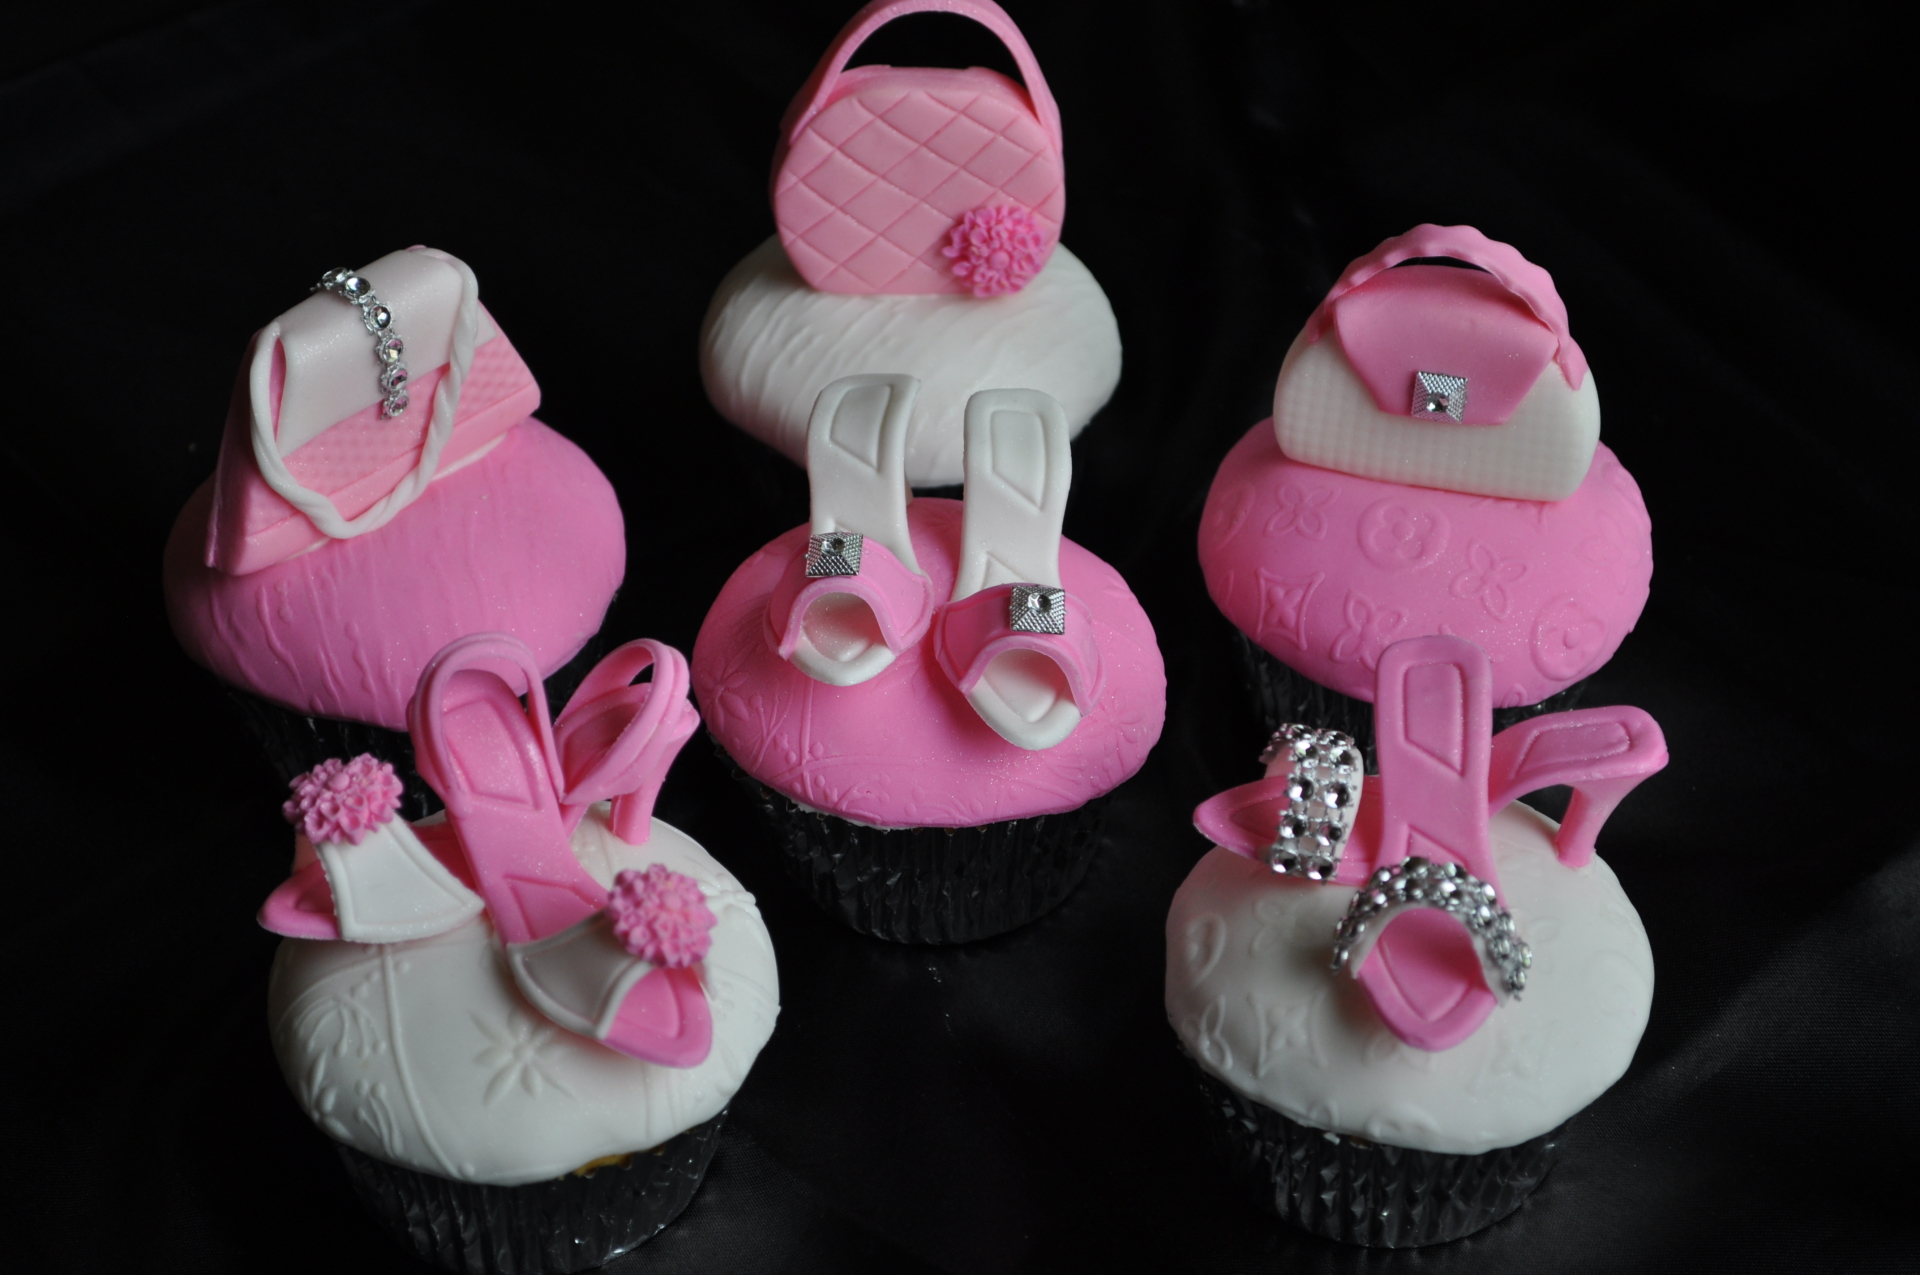 Heels and purses, glam, fashionista cupcakes